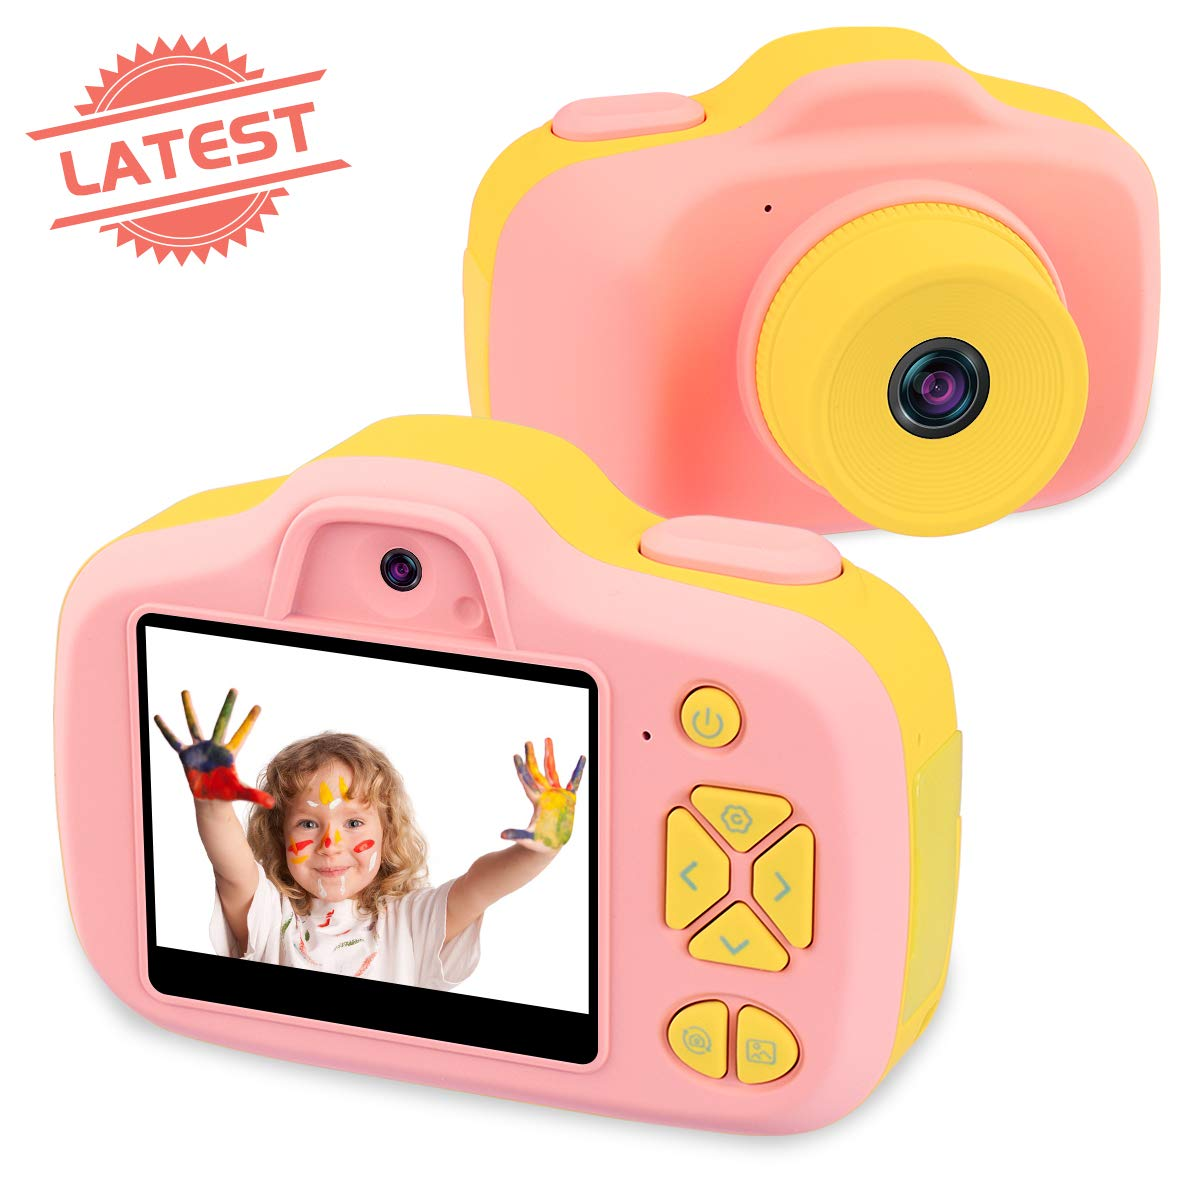 Joytrip Kids Video Camera for Girls Gifts HD 2.3 Inches Screen 8.0MP Kids Digital Cameras Shockproof Children Selfie Toy Camera Anti-Fall Mini Child Camcorder